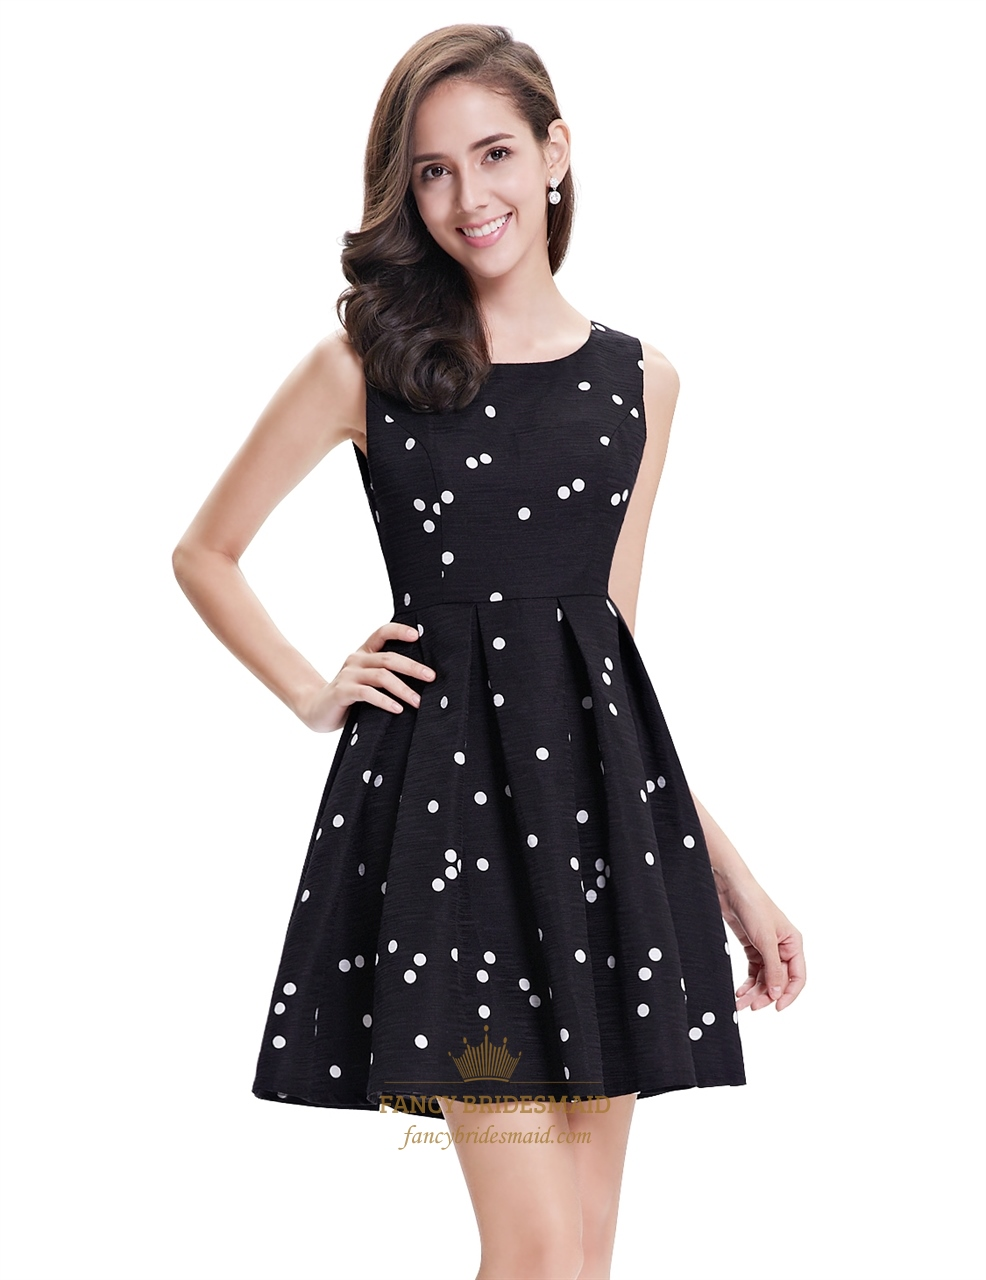 f1b4ac27b2ba Black And White Polka Dot Sleeveless Short Dress For Cocktail Party ...